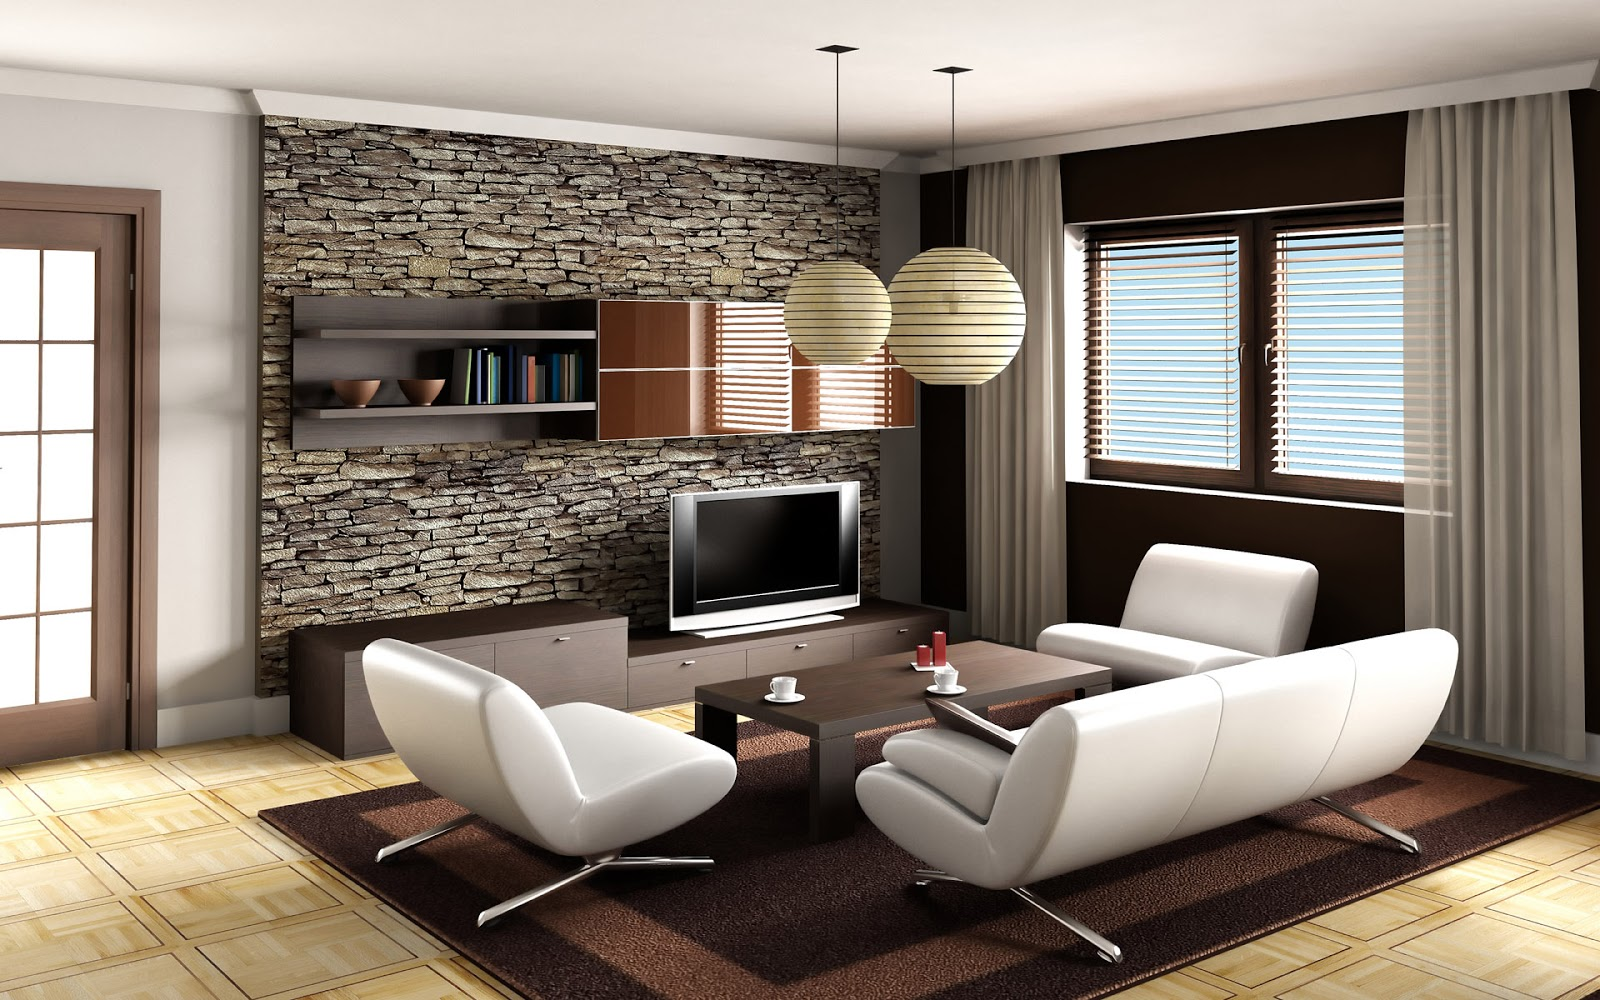 Arrangement of luxury living room ideas dream house experience for Modern living room interior design ideas